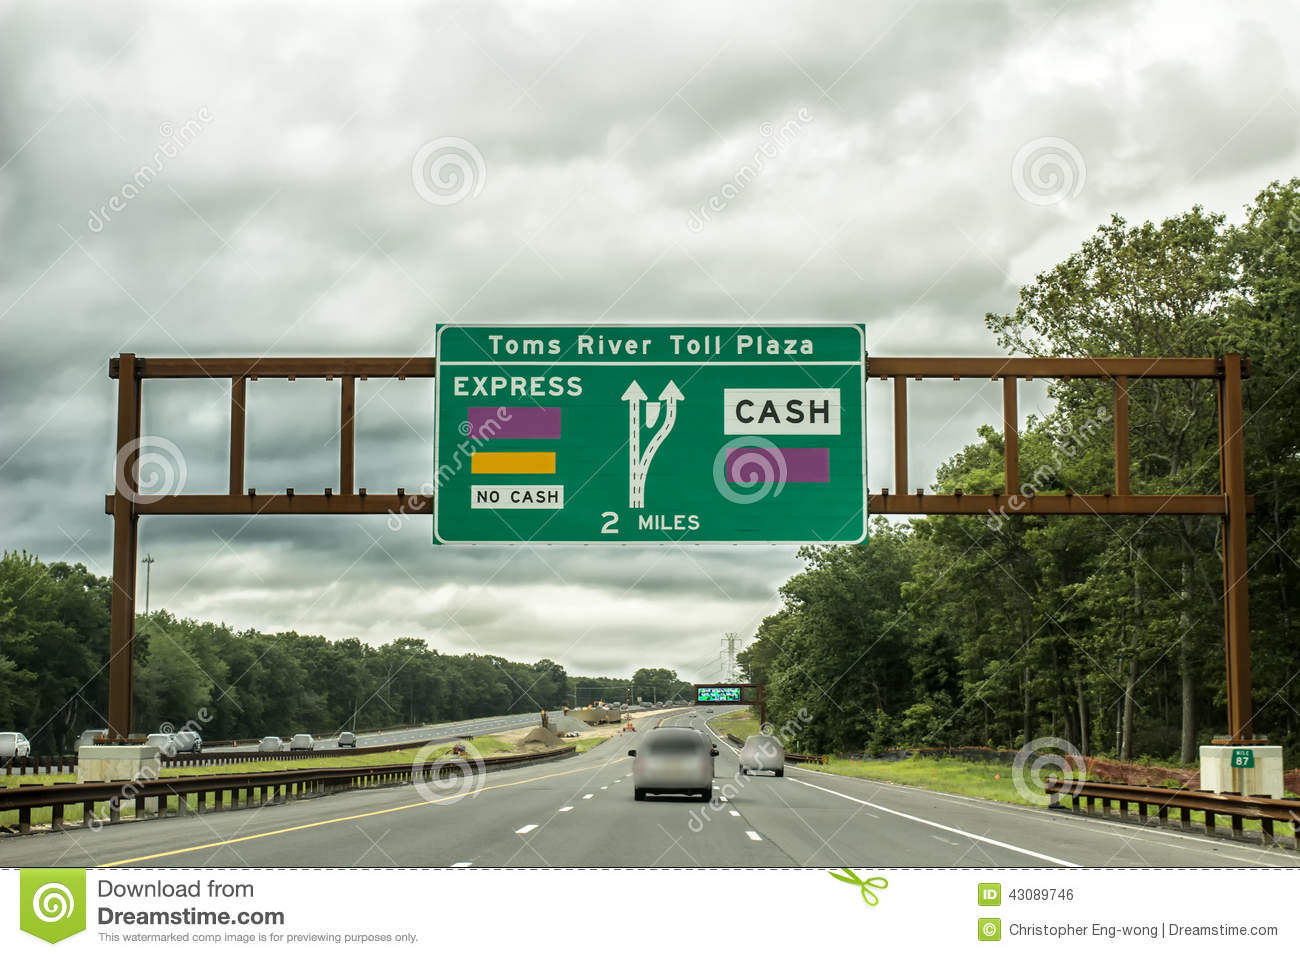 Garden state parkway pay missed toll garden ftempo for Garden state parkway missed toll